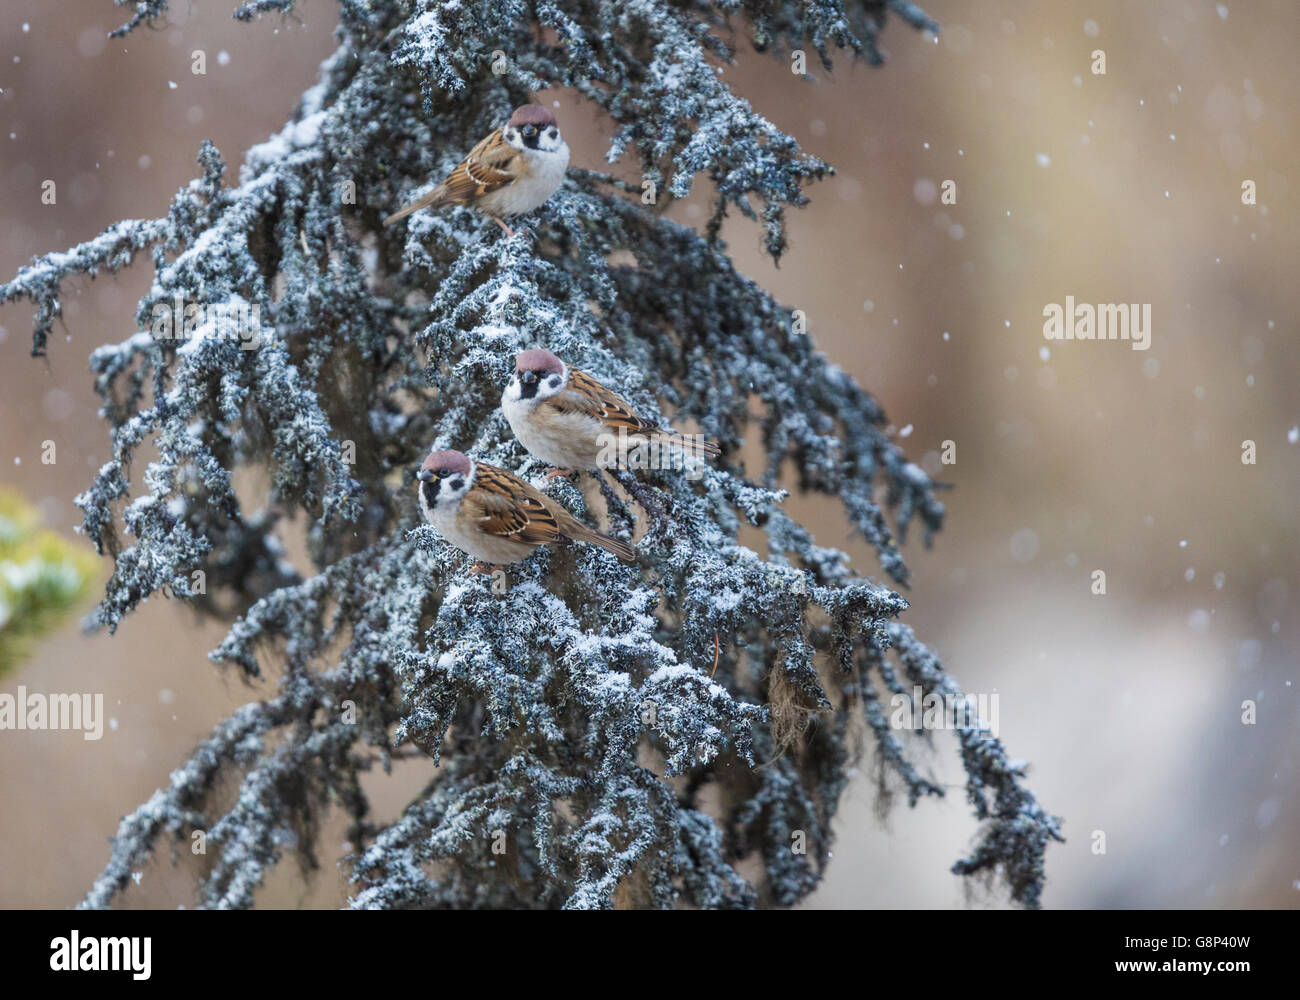 Three Tree sparrows sitting in an old spruce tree and it is snowing, Gällivare, Swedish Lapland, Sweden - Stock Image